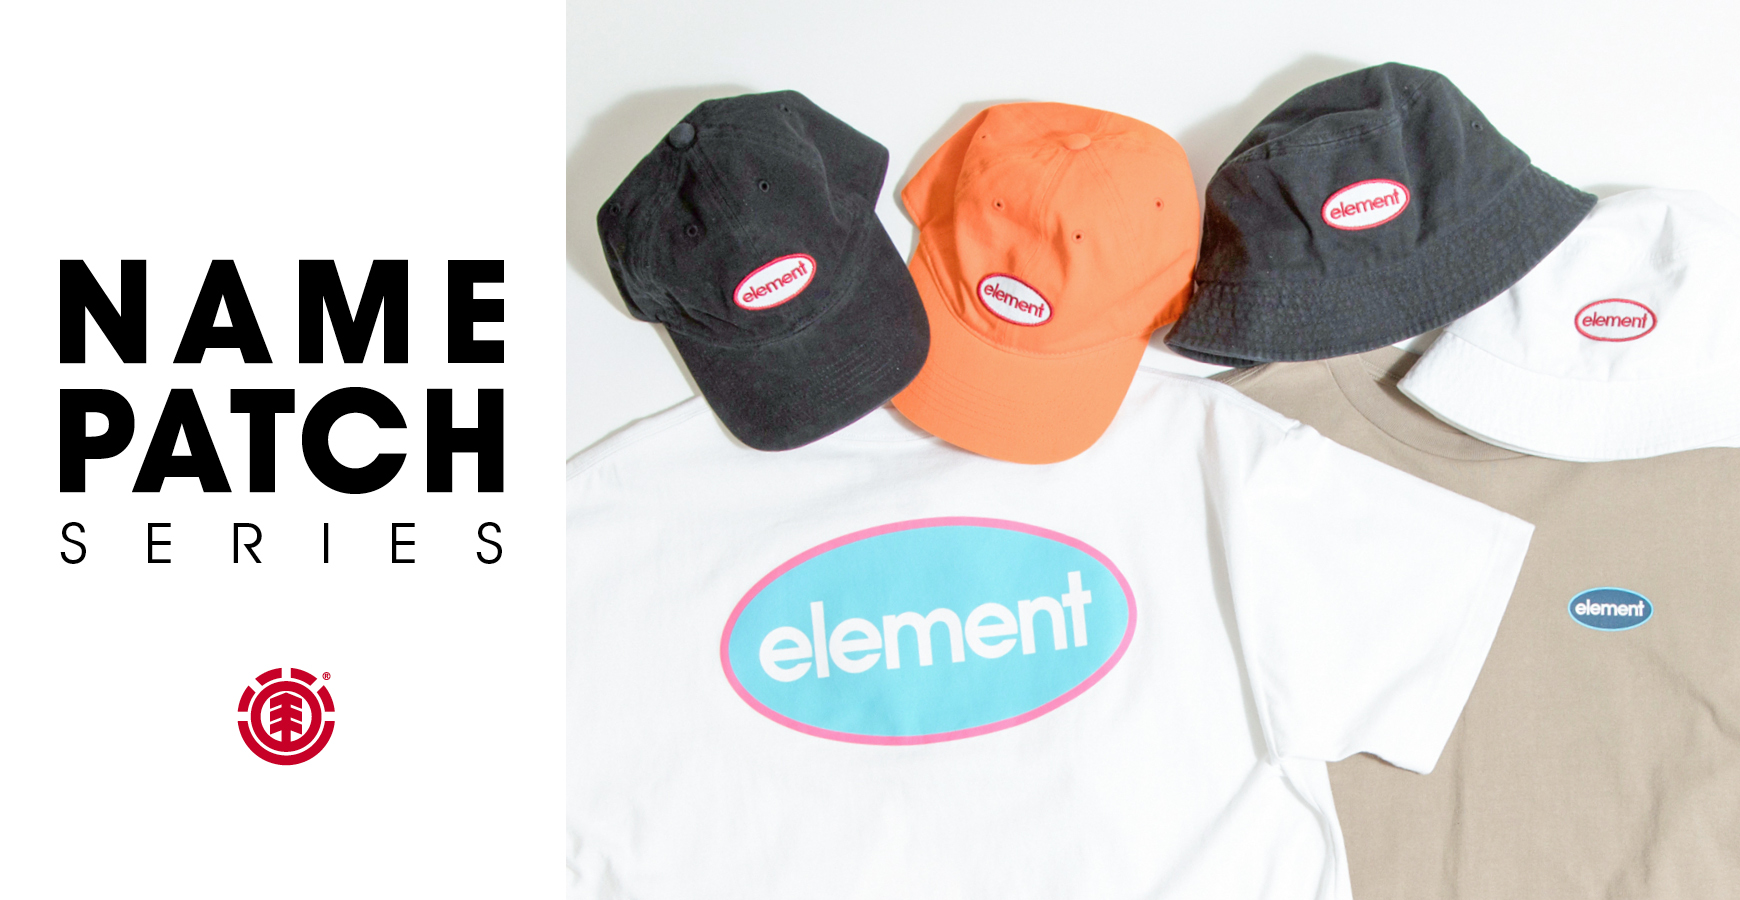 NAME PATCH SERIES